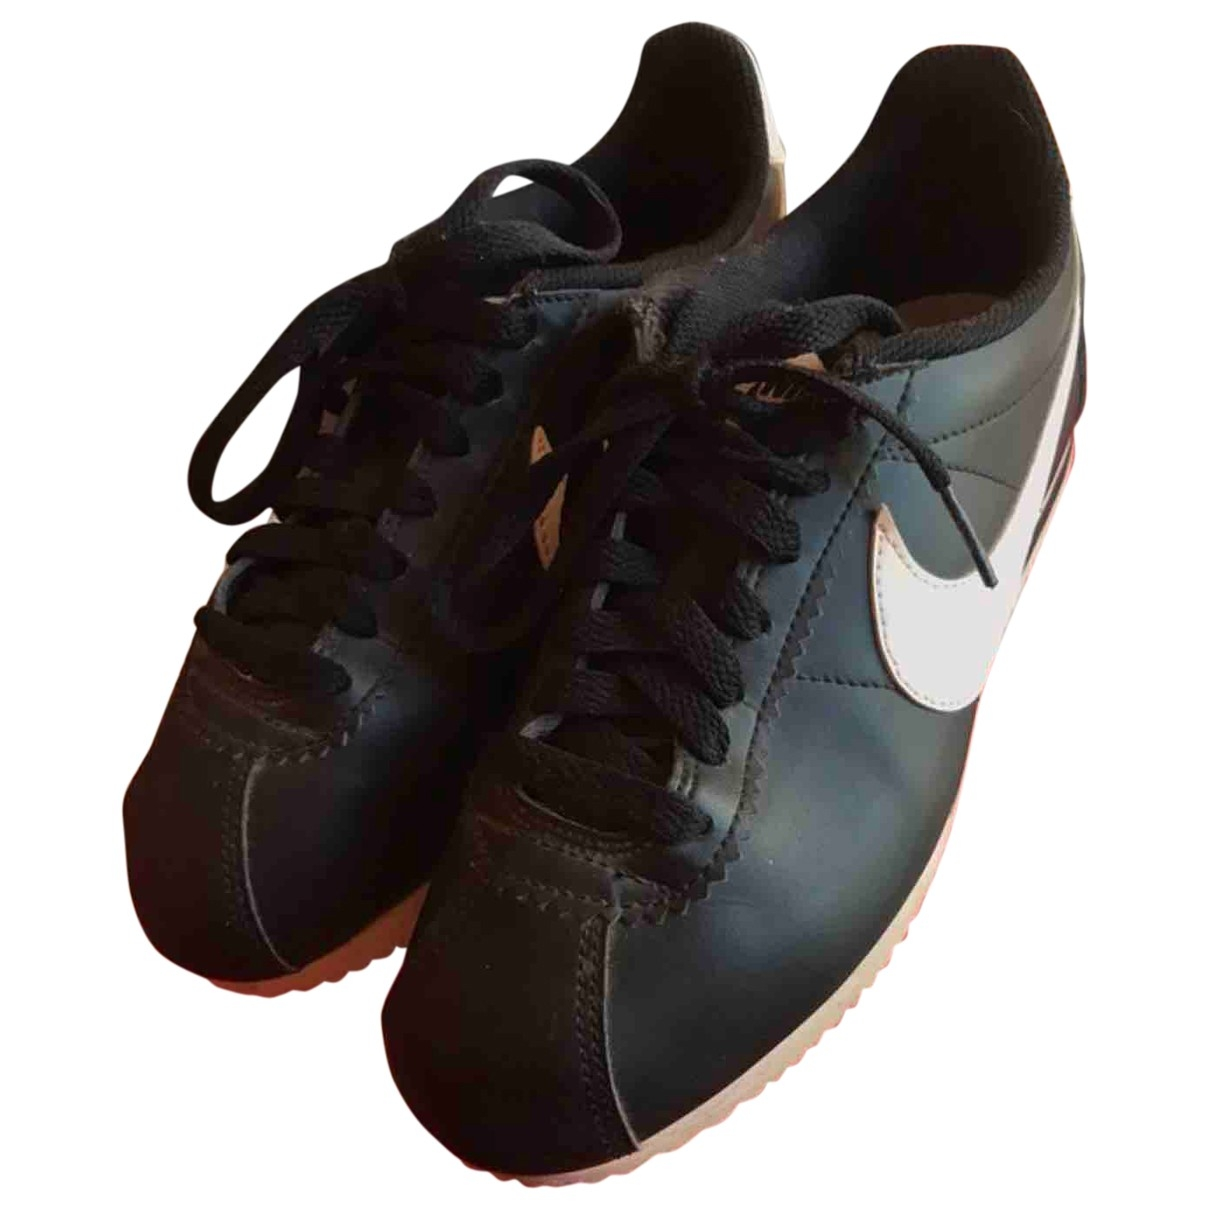 Nike Cortez Black Leather Trainers for Women 37.5 EU